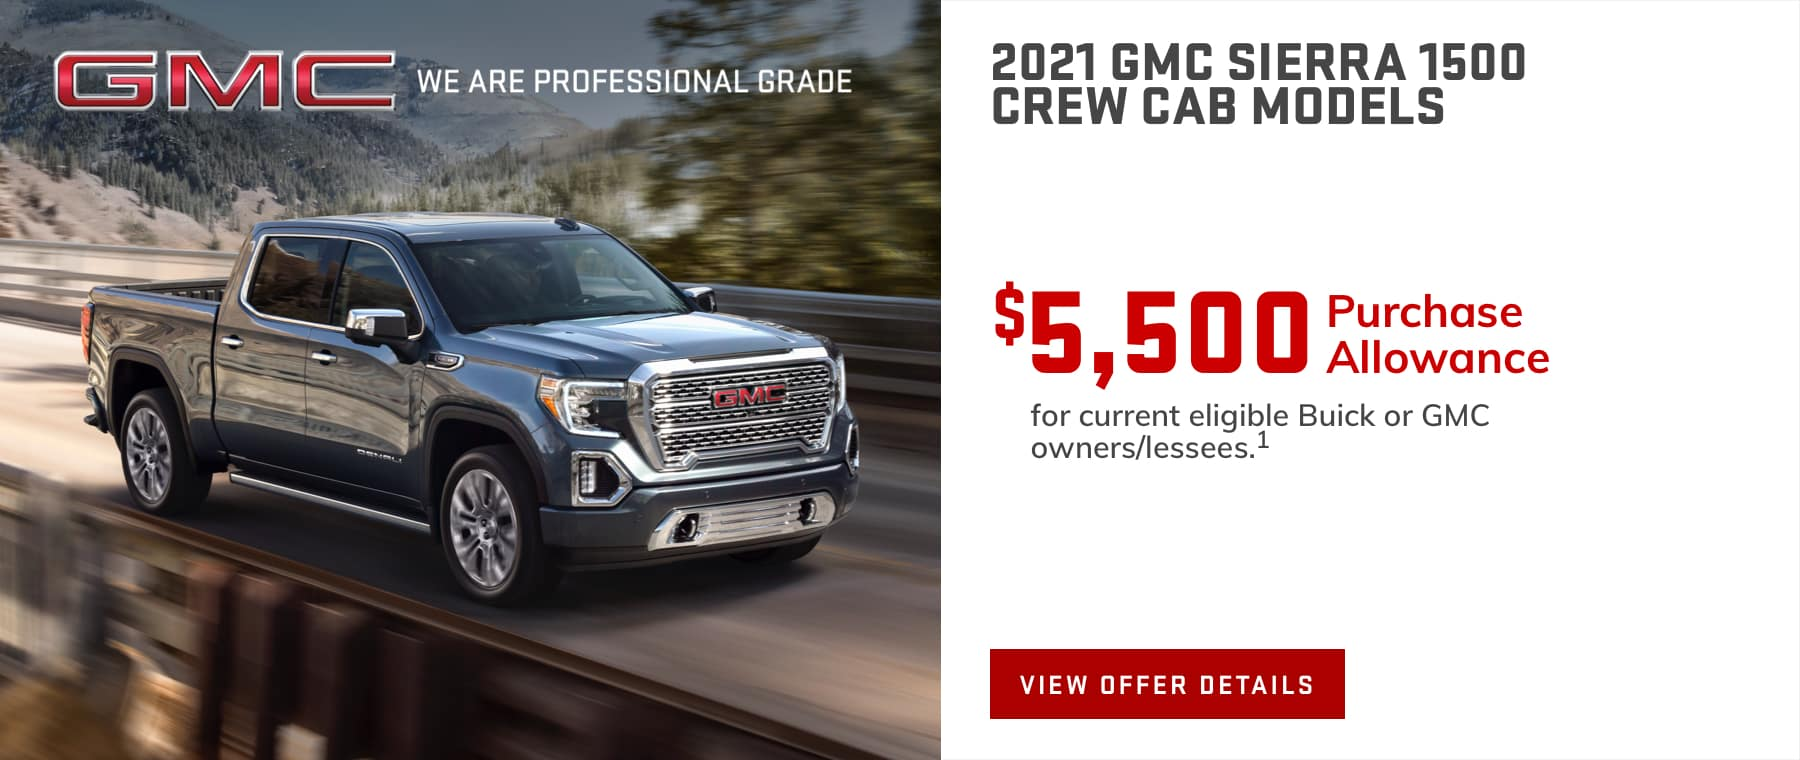 $5,500 Purchase Allowance for current eligible Buick or GMC owners/lessees.1